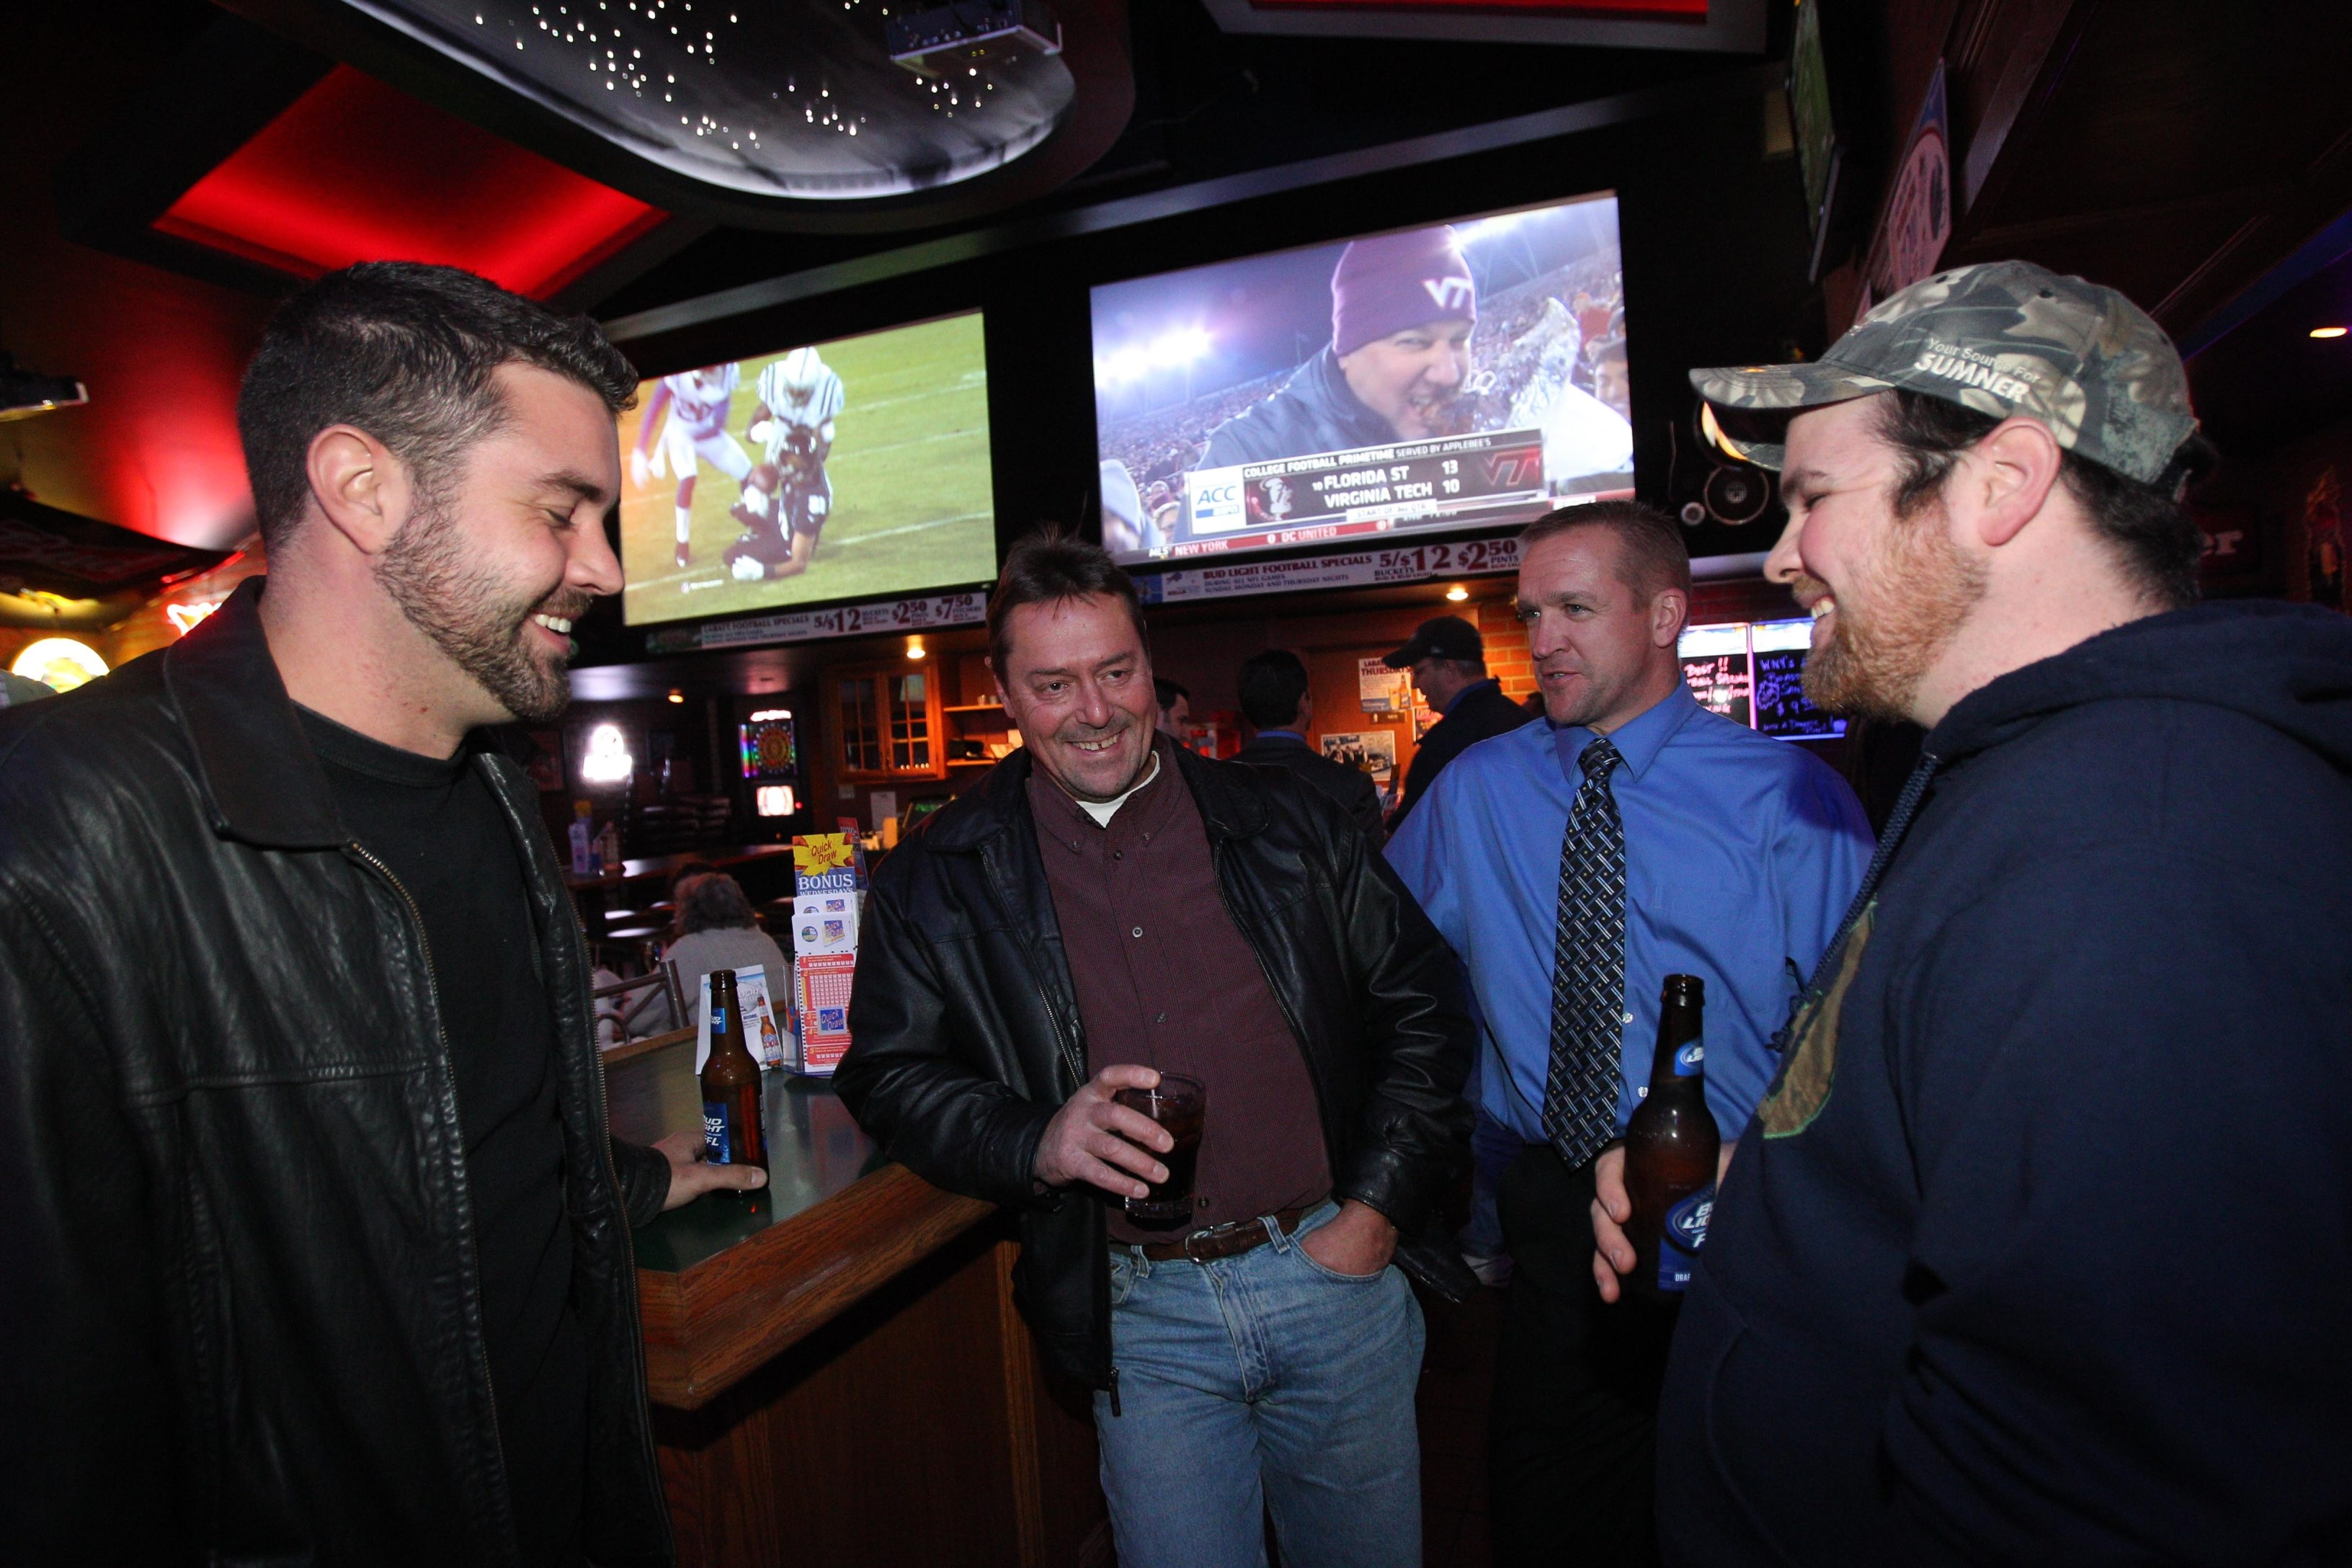 Hanging out and catching some football in the bar area at Tony Rome's are, from left, Mike Nuttle, Tim Franger, Jeff Zubler and John Shafer.